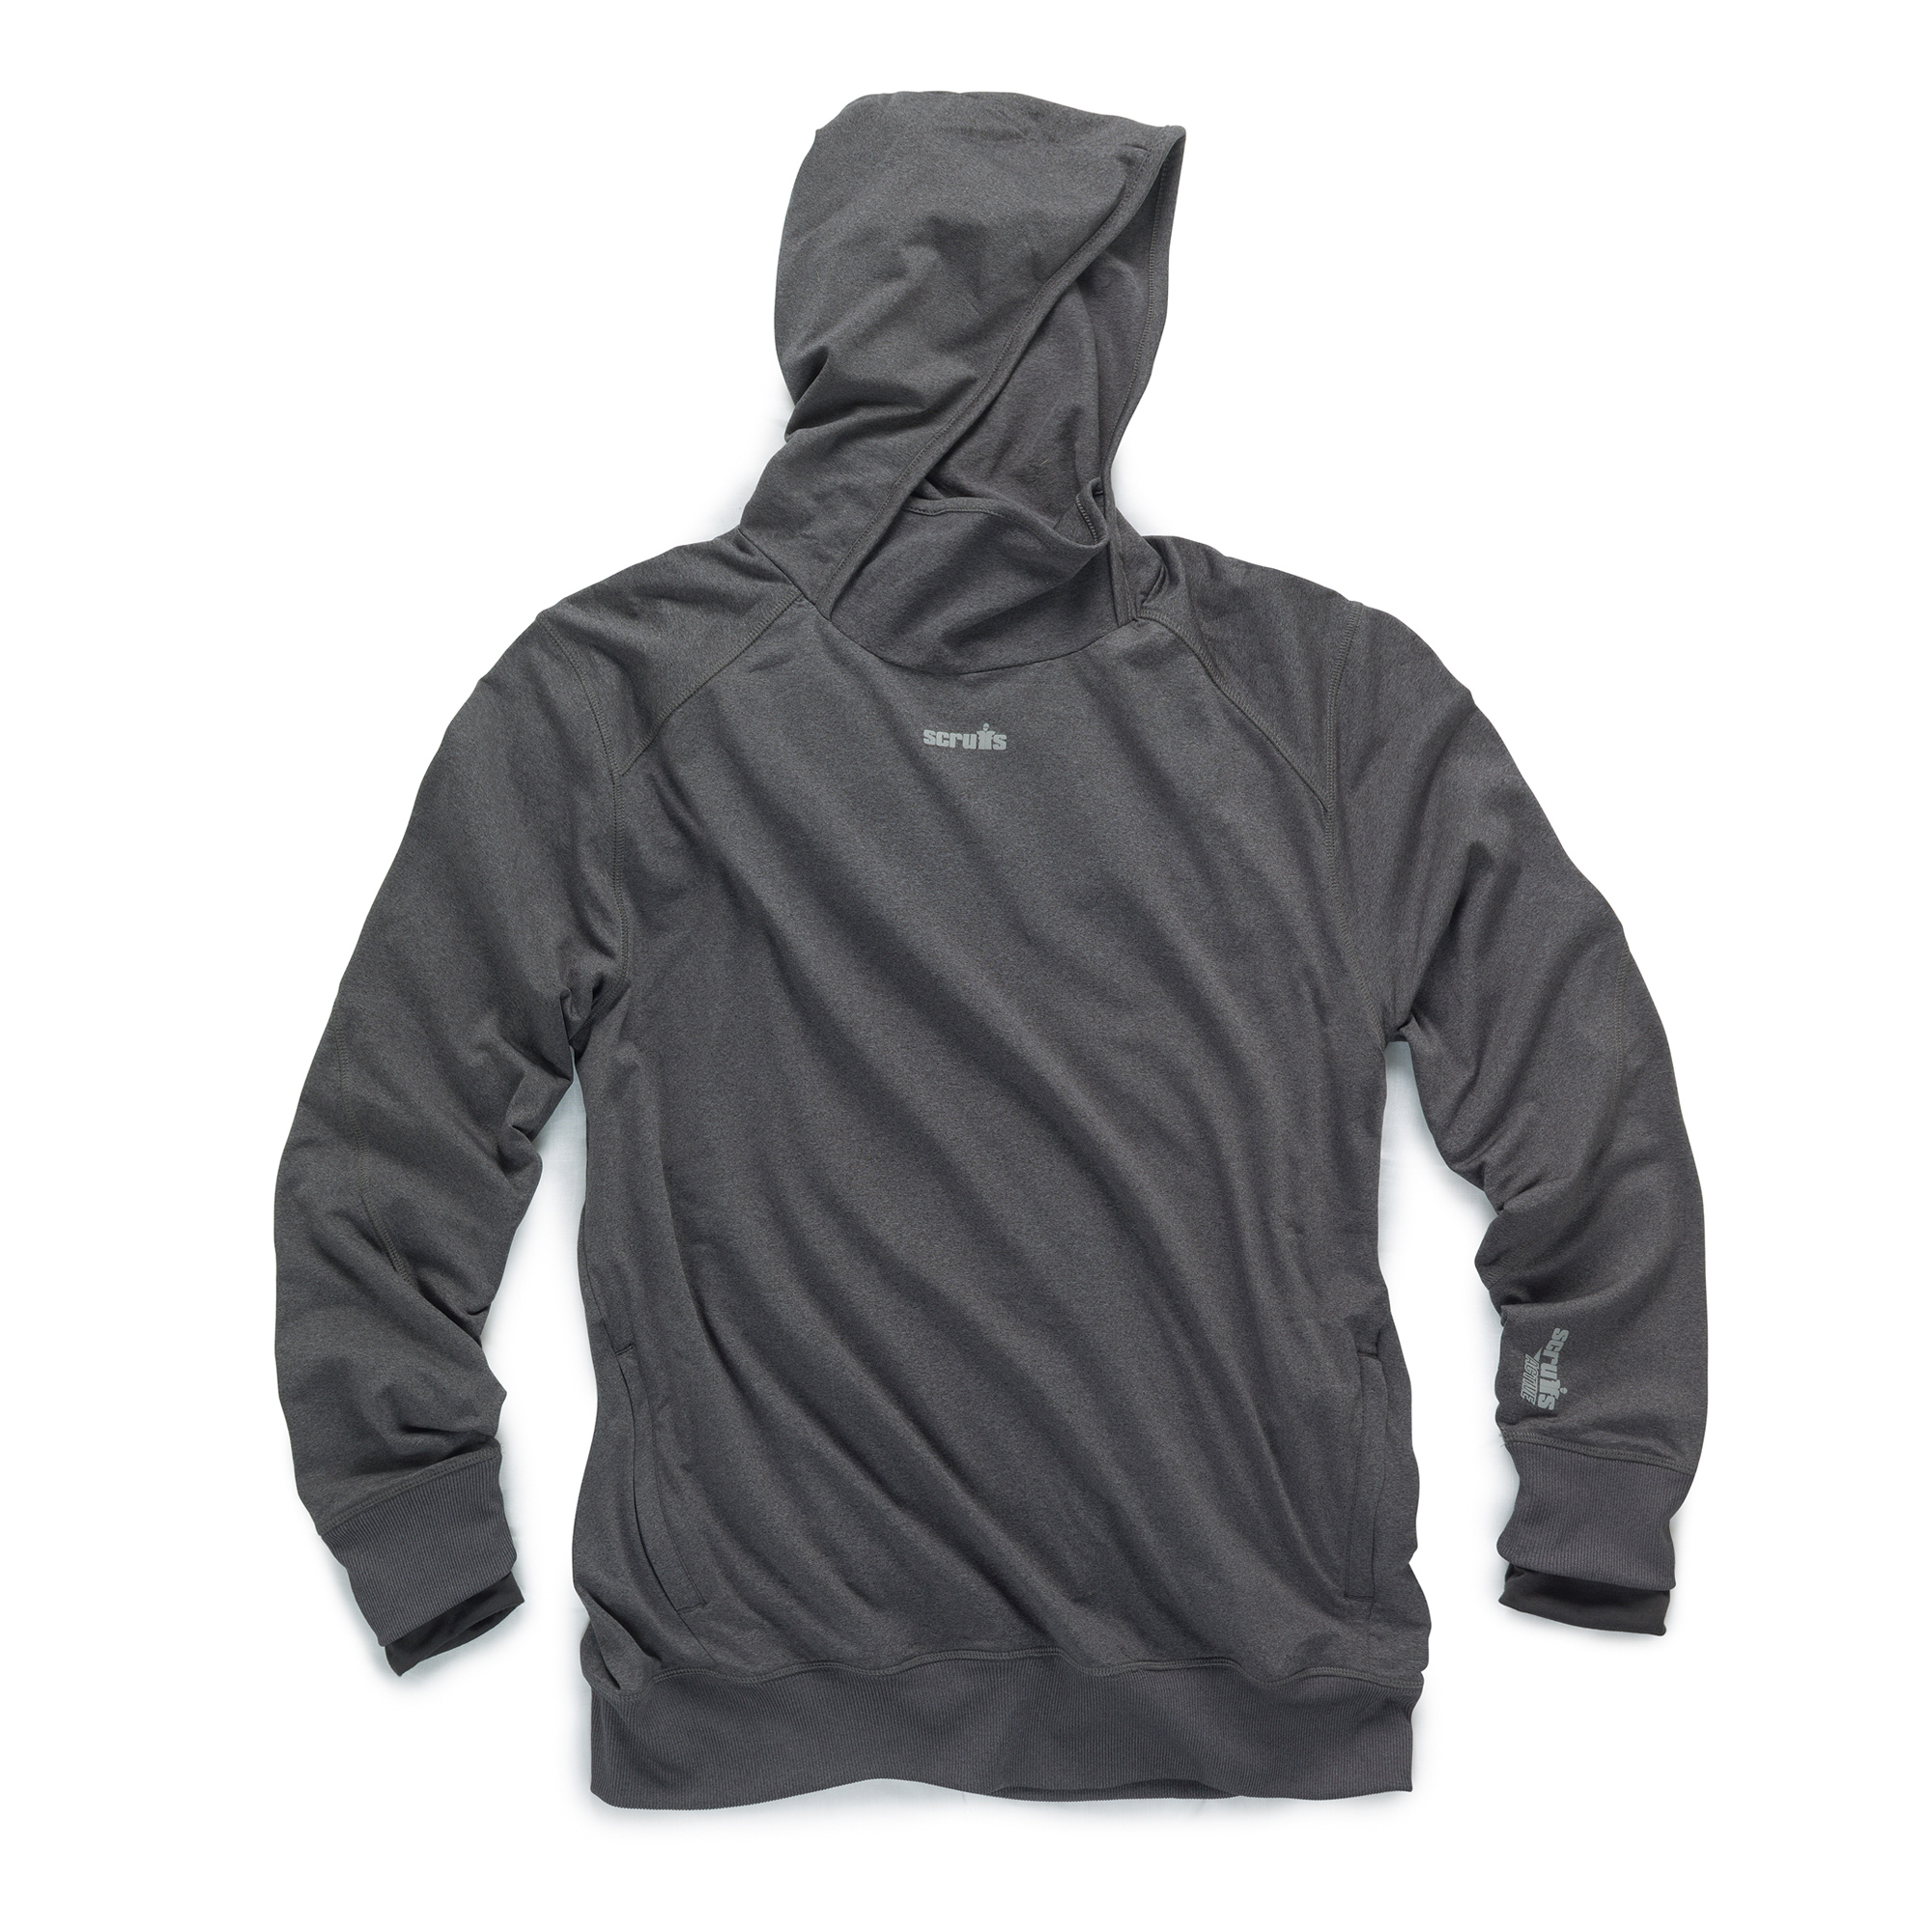 Charcoal marl polyester active hoodie with side pockets, ribbed elasticated cuffs and hems and contrasting grey Scruffs branding